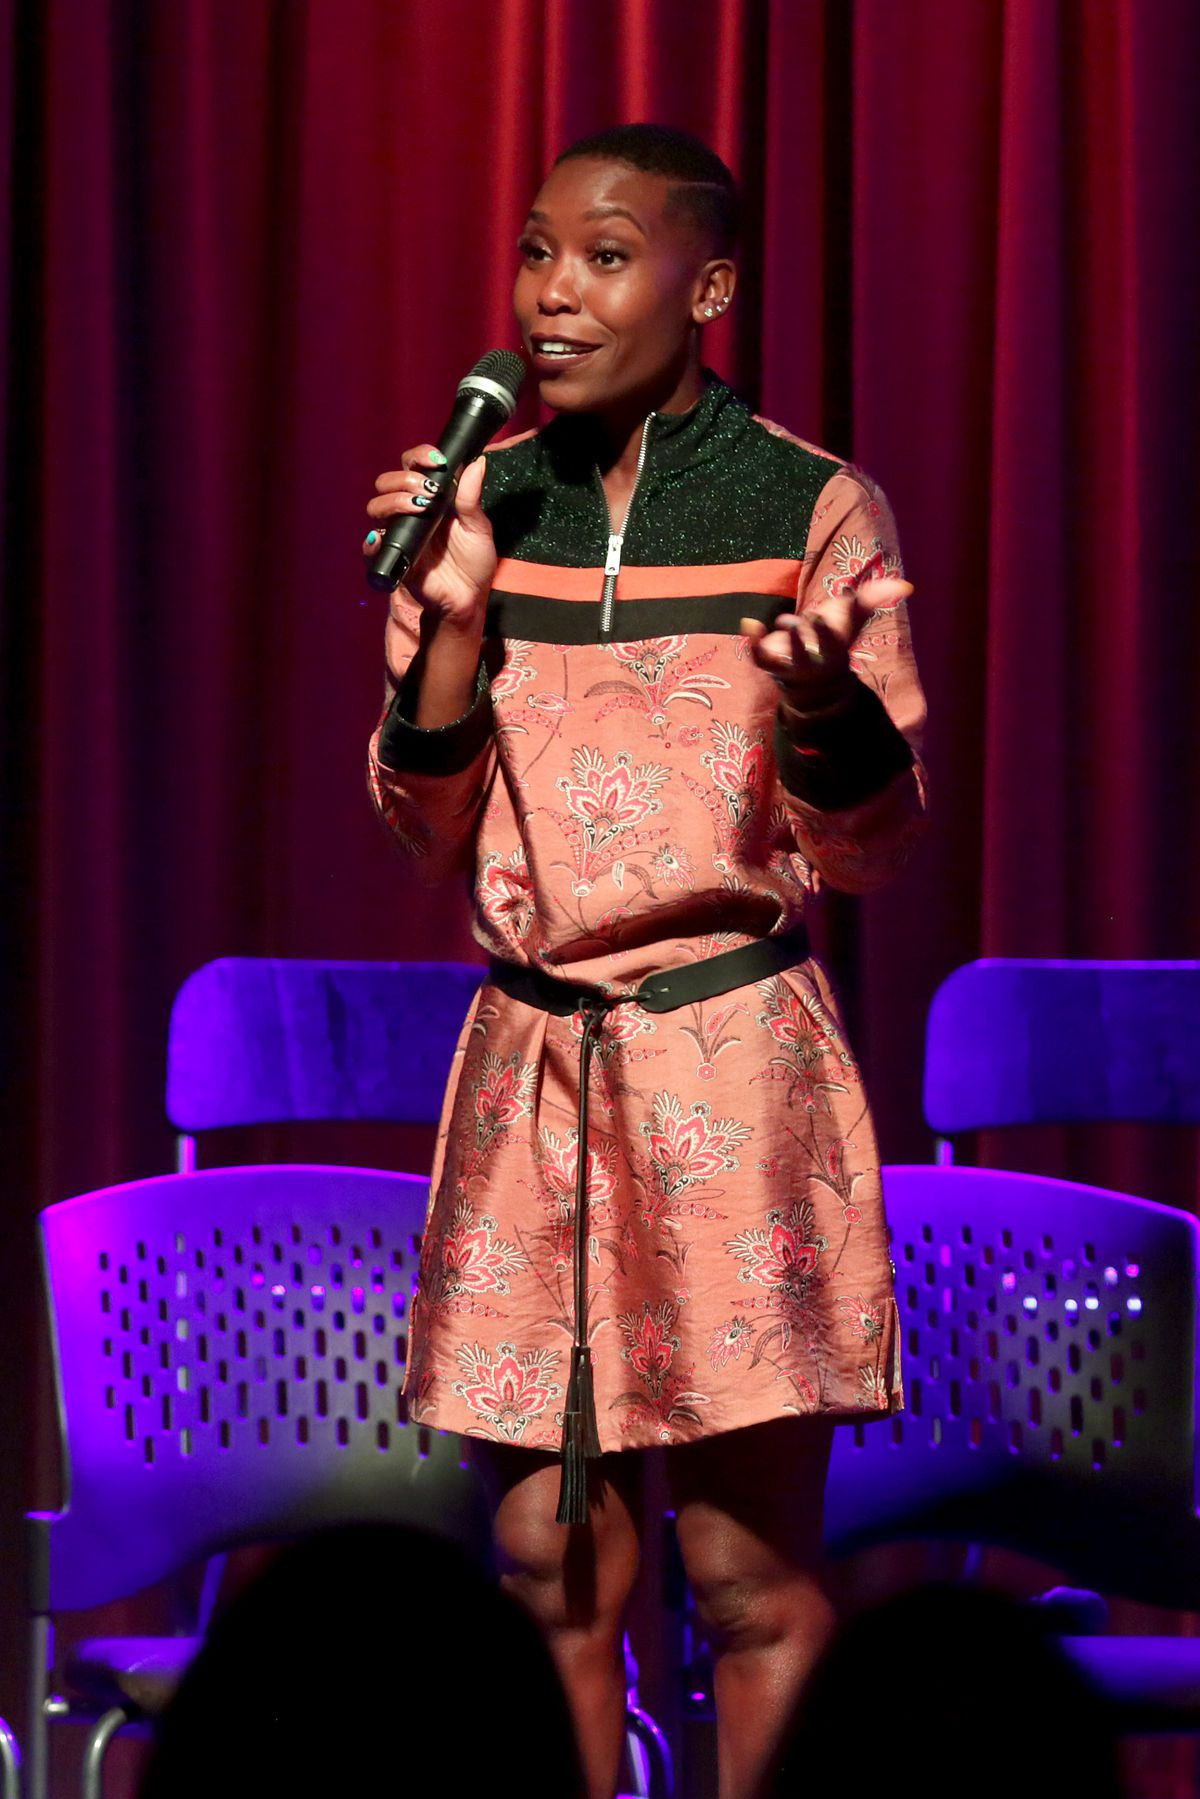 A photo of Nwaka Onwusa speaking onstage at A Conversation With Jermaine Dupri & Friends at the Grammy Museum in 2018